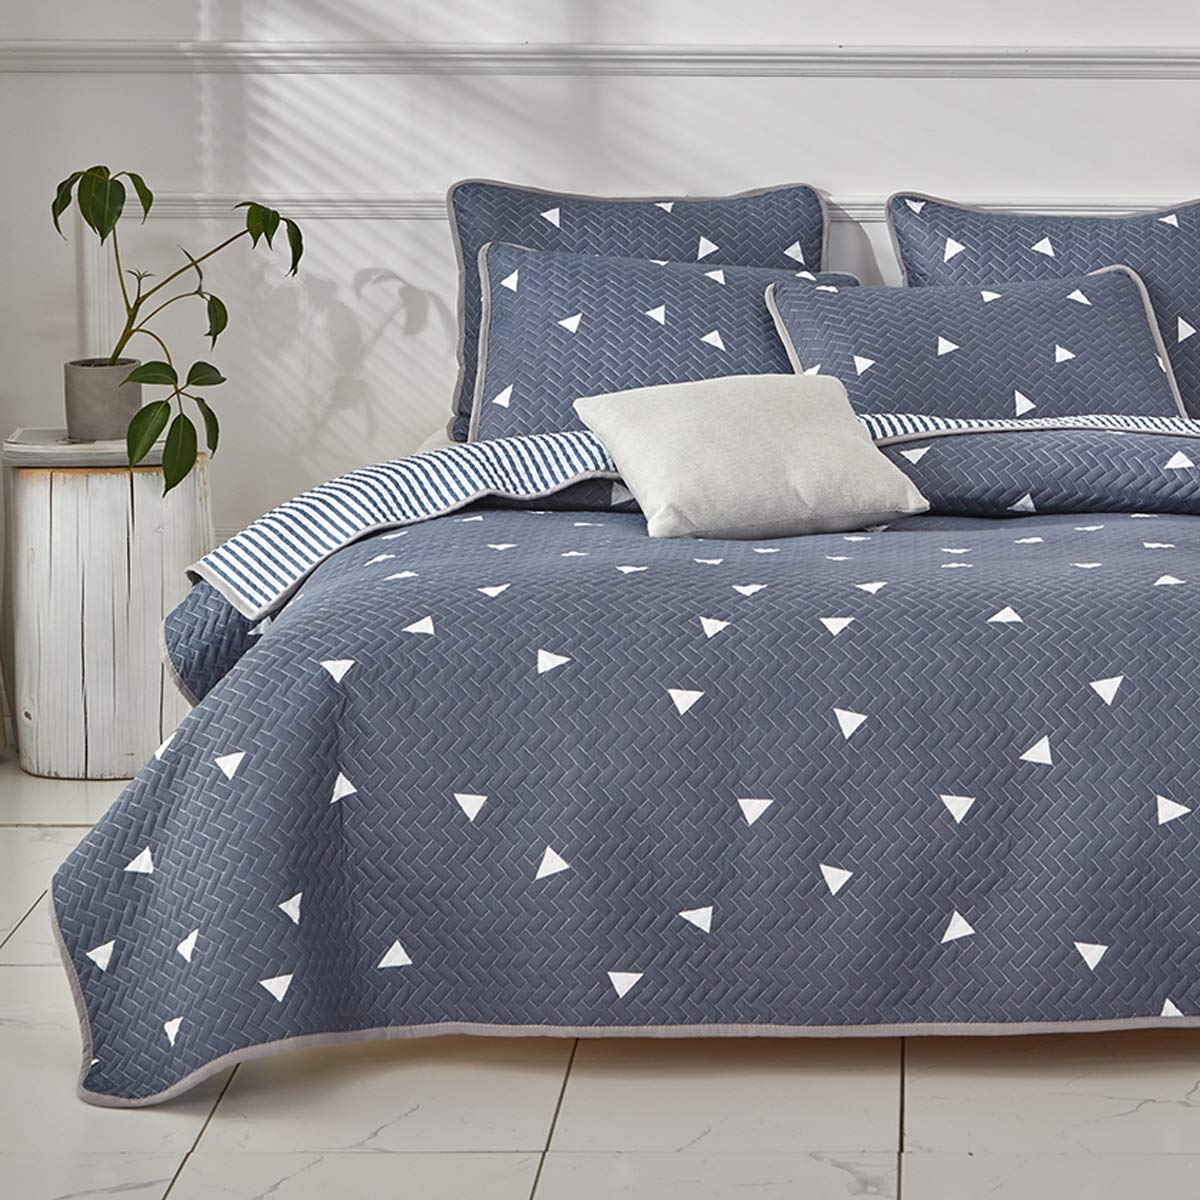 Uozzi Bedding 3 Piece Reversible Twin Quilt Set Blue Gray Soft Microfiber with White Triangles Lightweight Men Adult 104x90 in Coverlet Bedspread for All Season